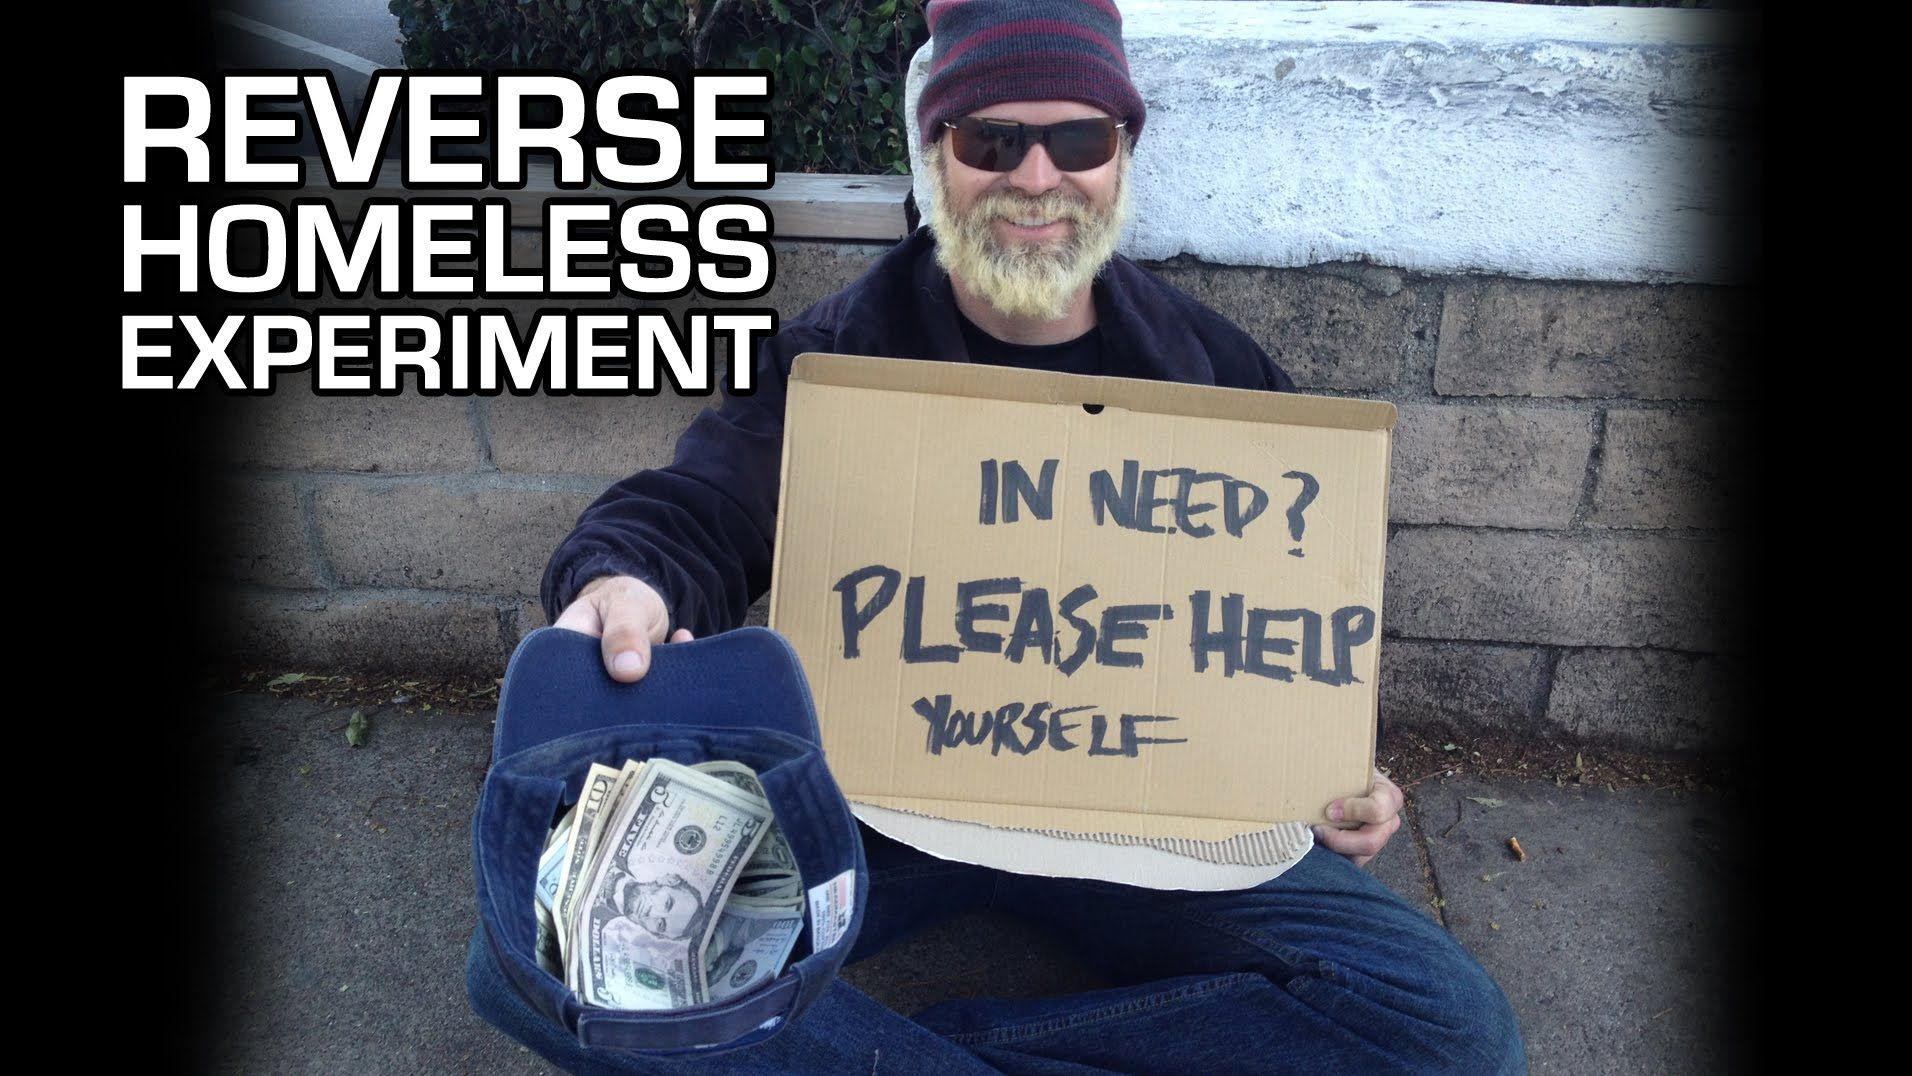 WHAT IF THE HOMELESS GAVE YOU MONEY? (ORIGINAL)